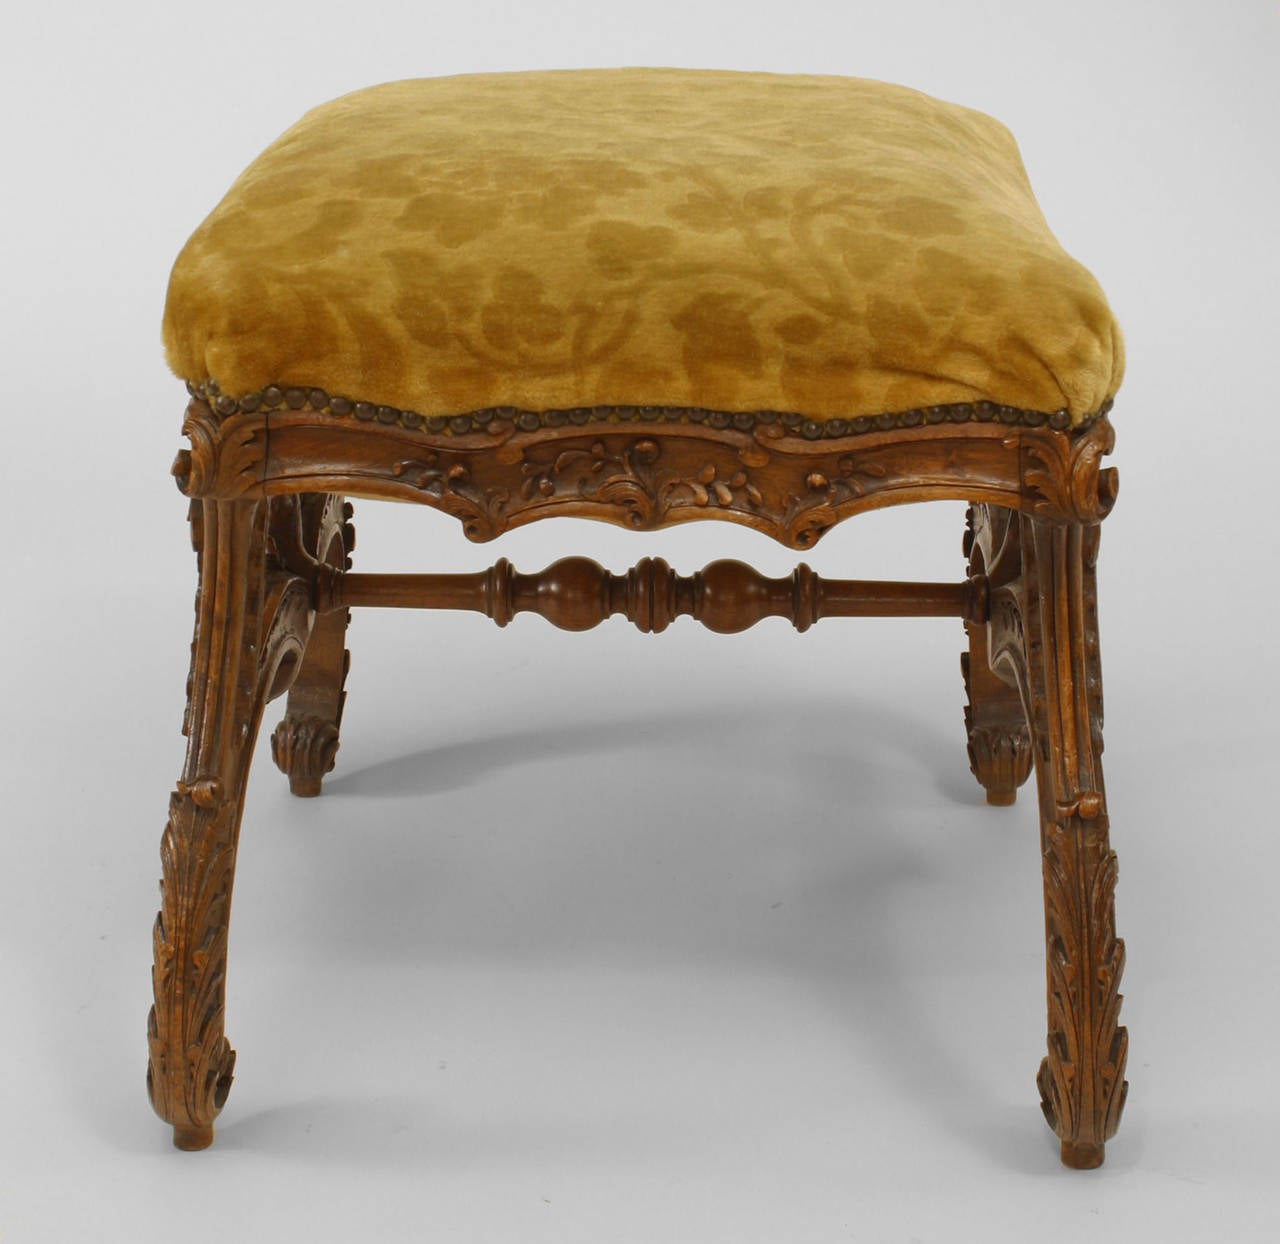 19th c. Italian Baroque Style Square Upholstered Walnut Bench In Good Condition For Sale In New York, NY